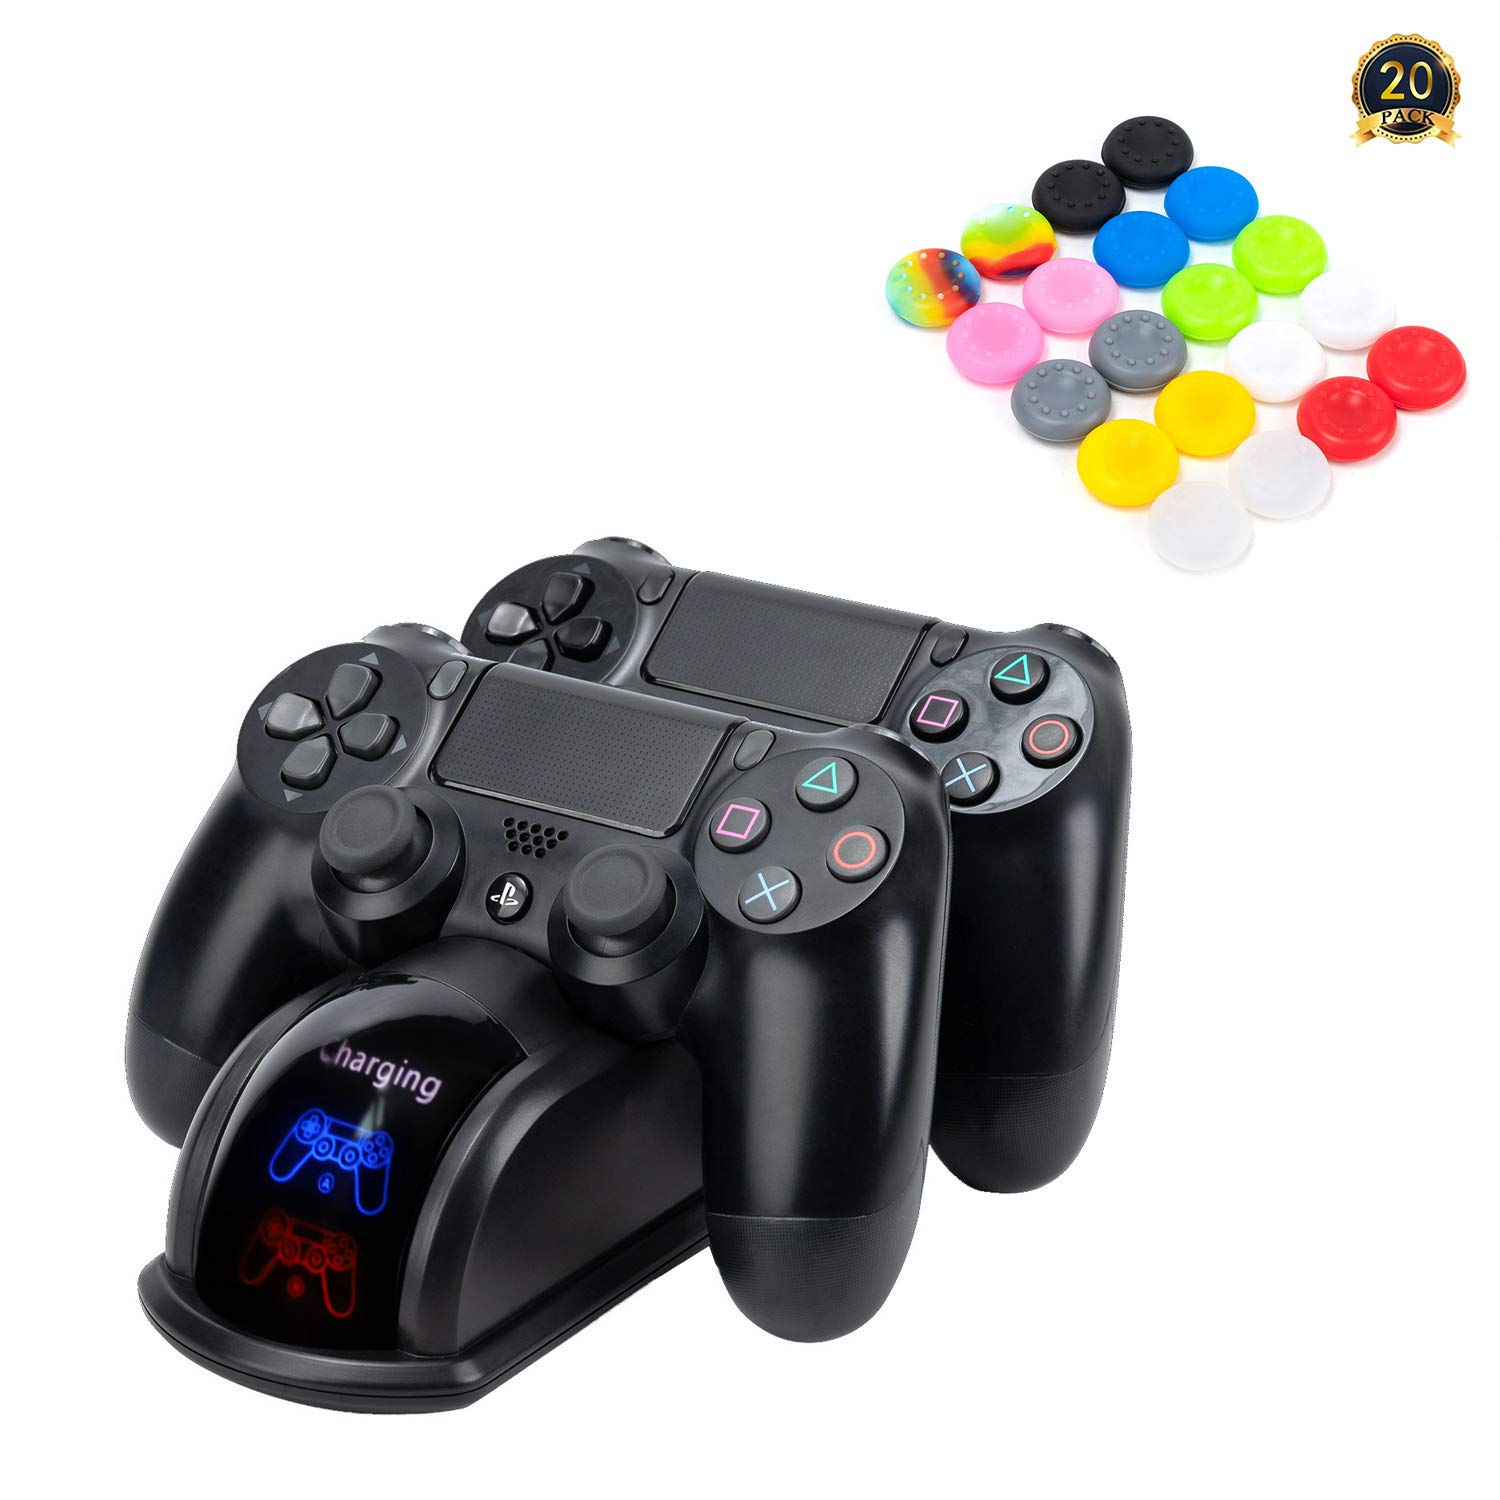 My Genik Controller Charger for PS4/PS4 Slim/PS4 Pro,Fast Charging Station Dock for DualShock 4 Controller,Double Charging Station Stand, Come with 20 PCS Colorful Silicone Thumb Grips